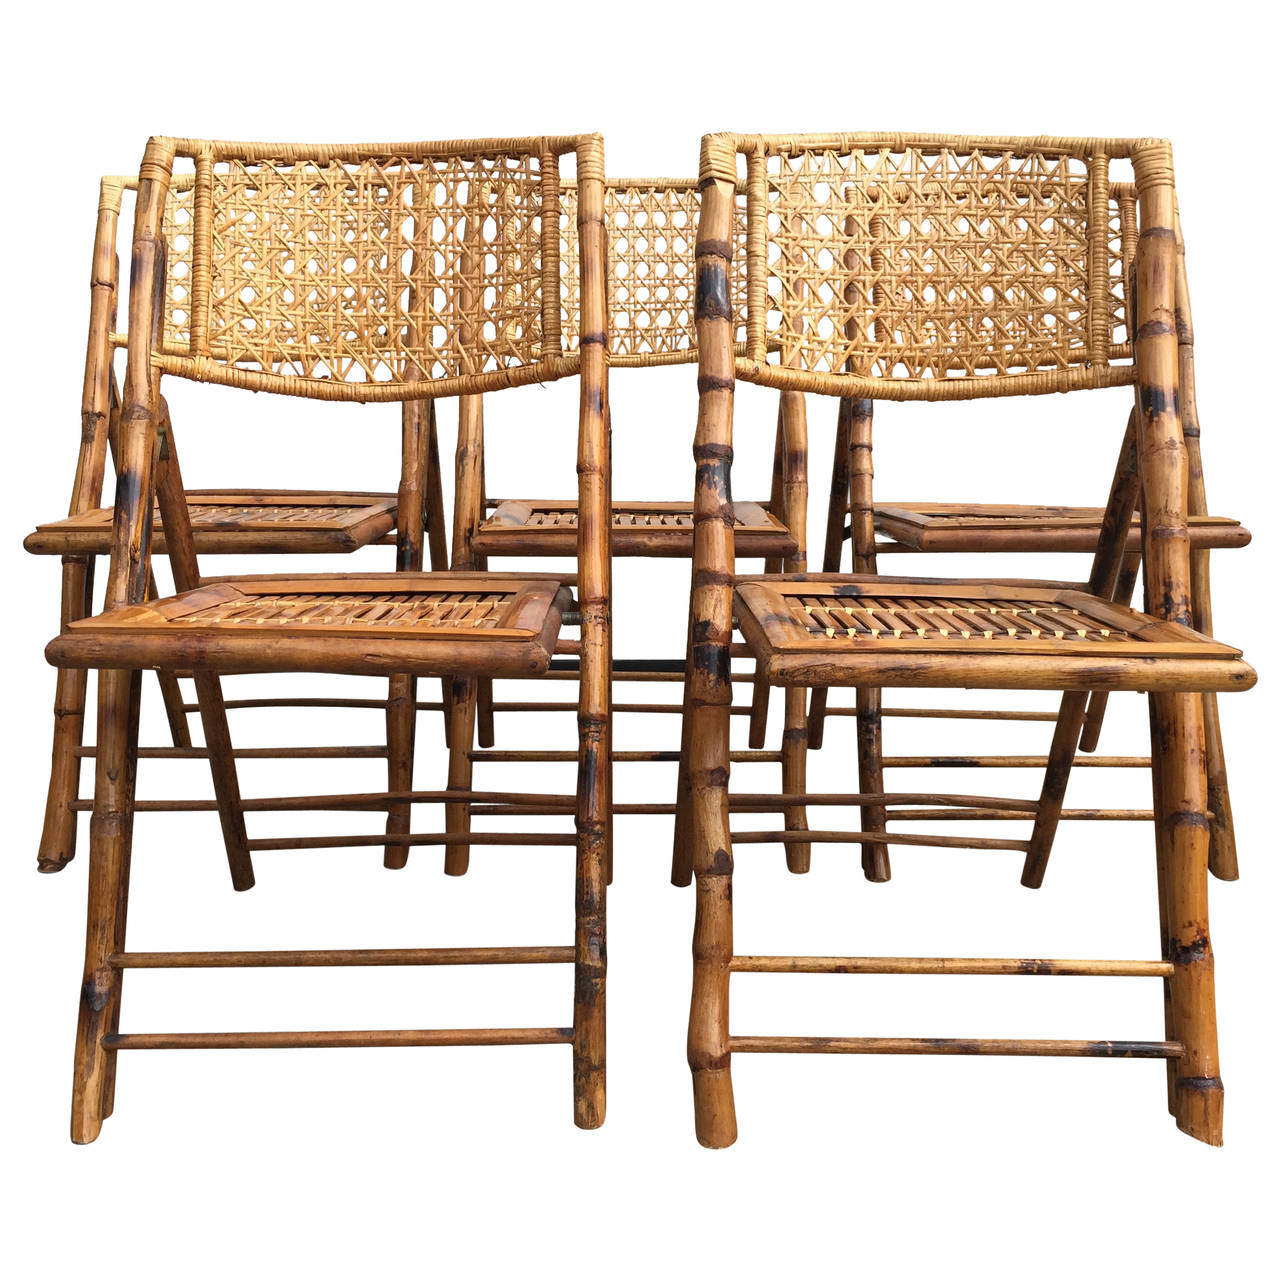 Set Of Five Scorched Bamboo Frame Folding Chairs With Rattan Seat And Back    Old Town Crossing